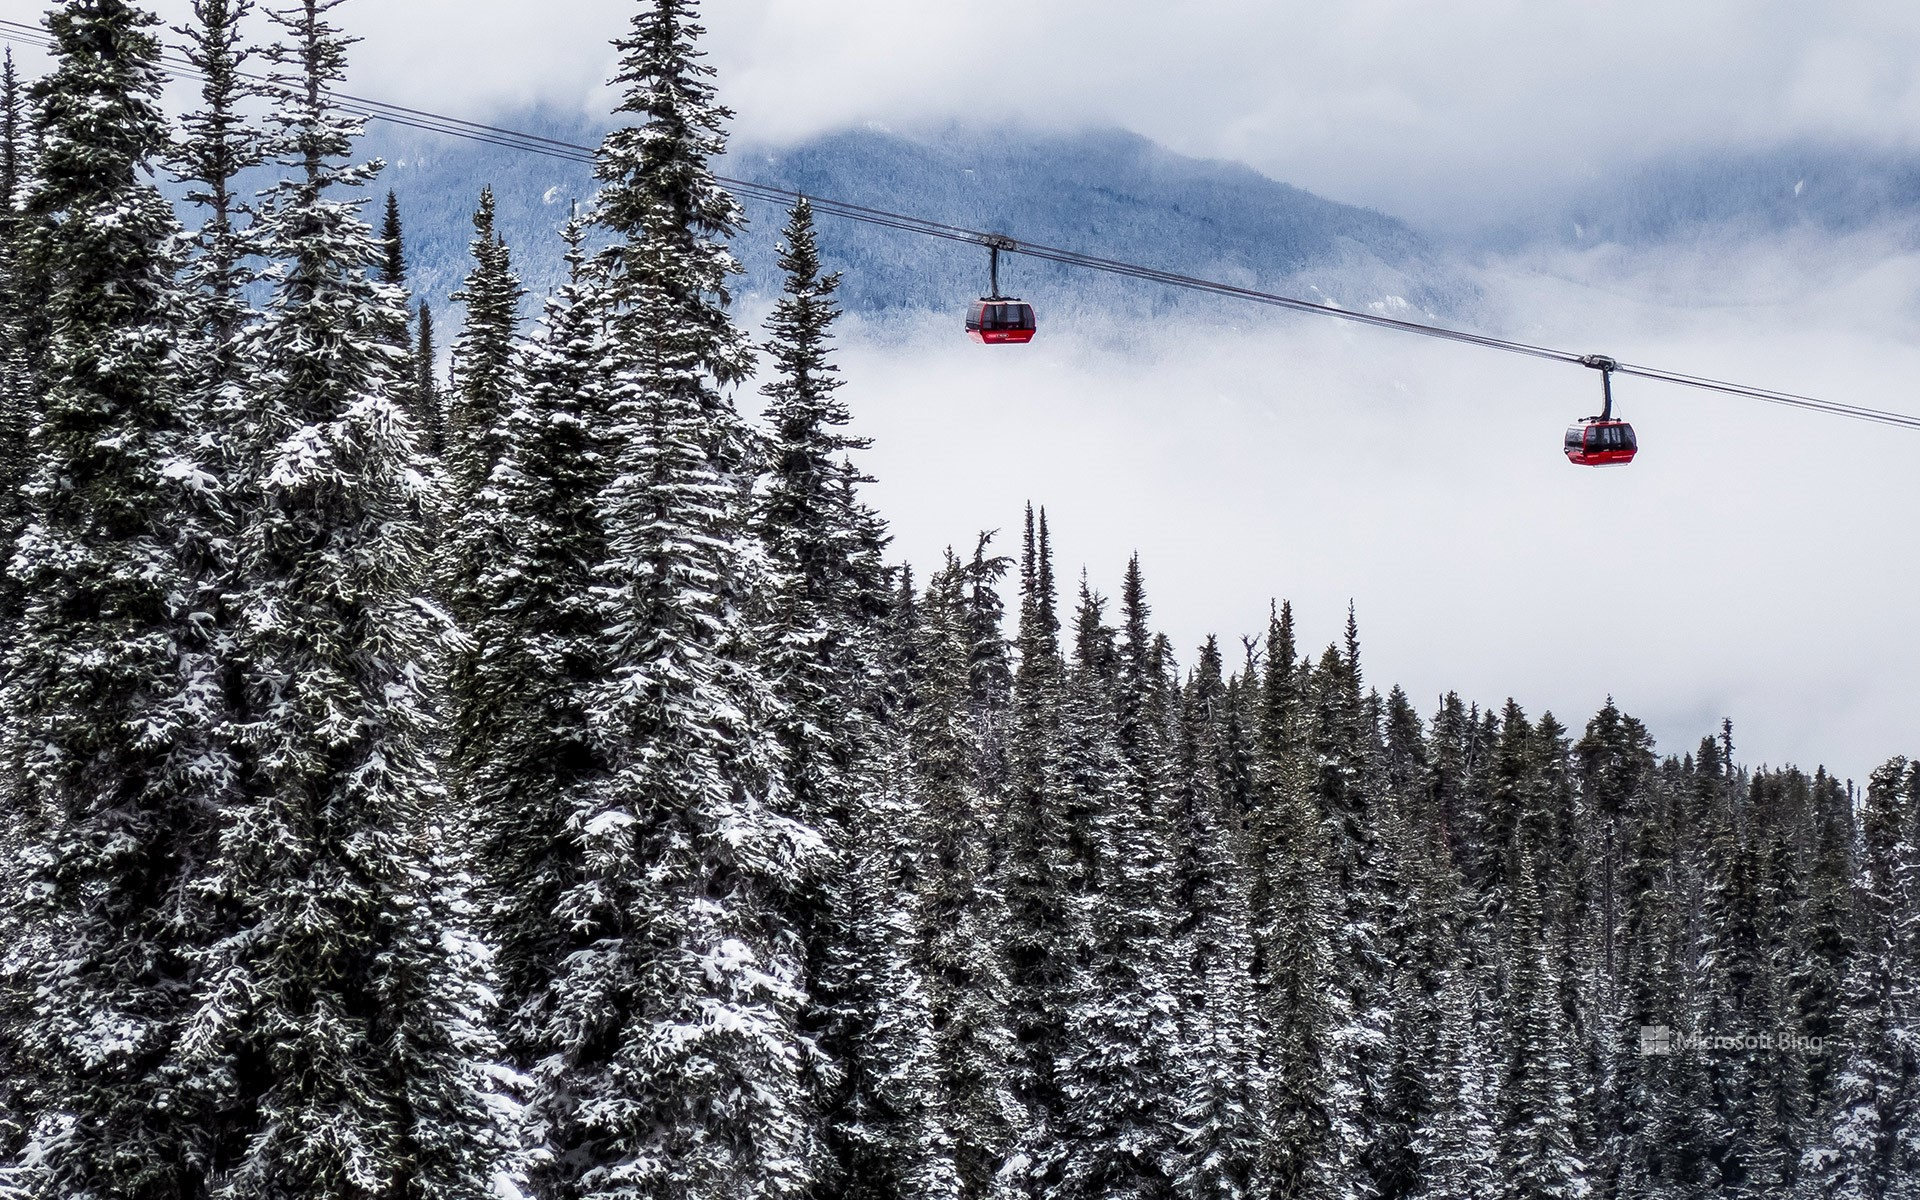 Ski lifts in Whistler, B.C.